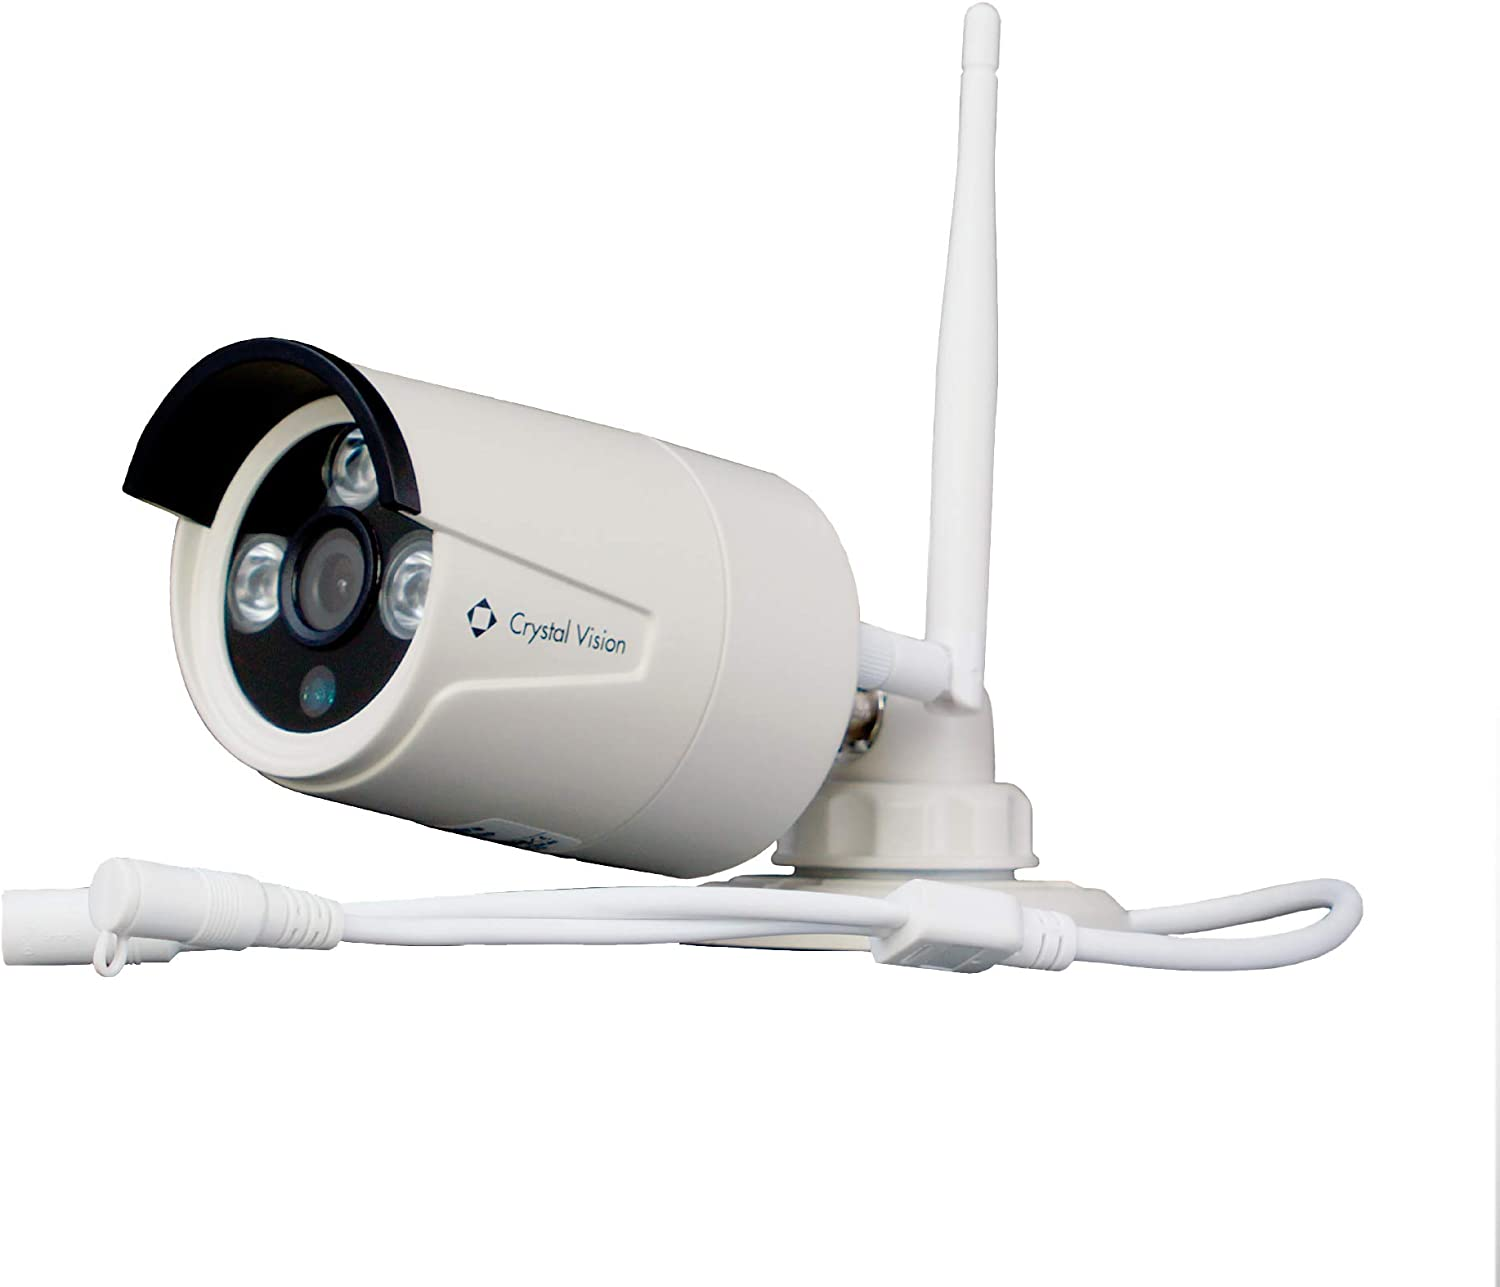 Crystal Vision CVT-3010W 720P Camera Wireless 公式ショップ Replacement Add-on 購入